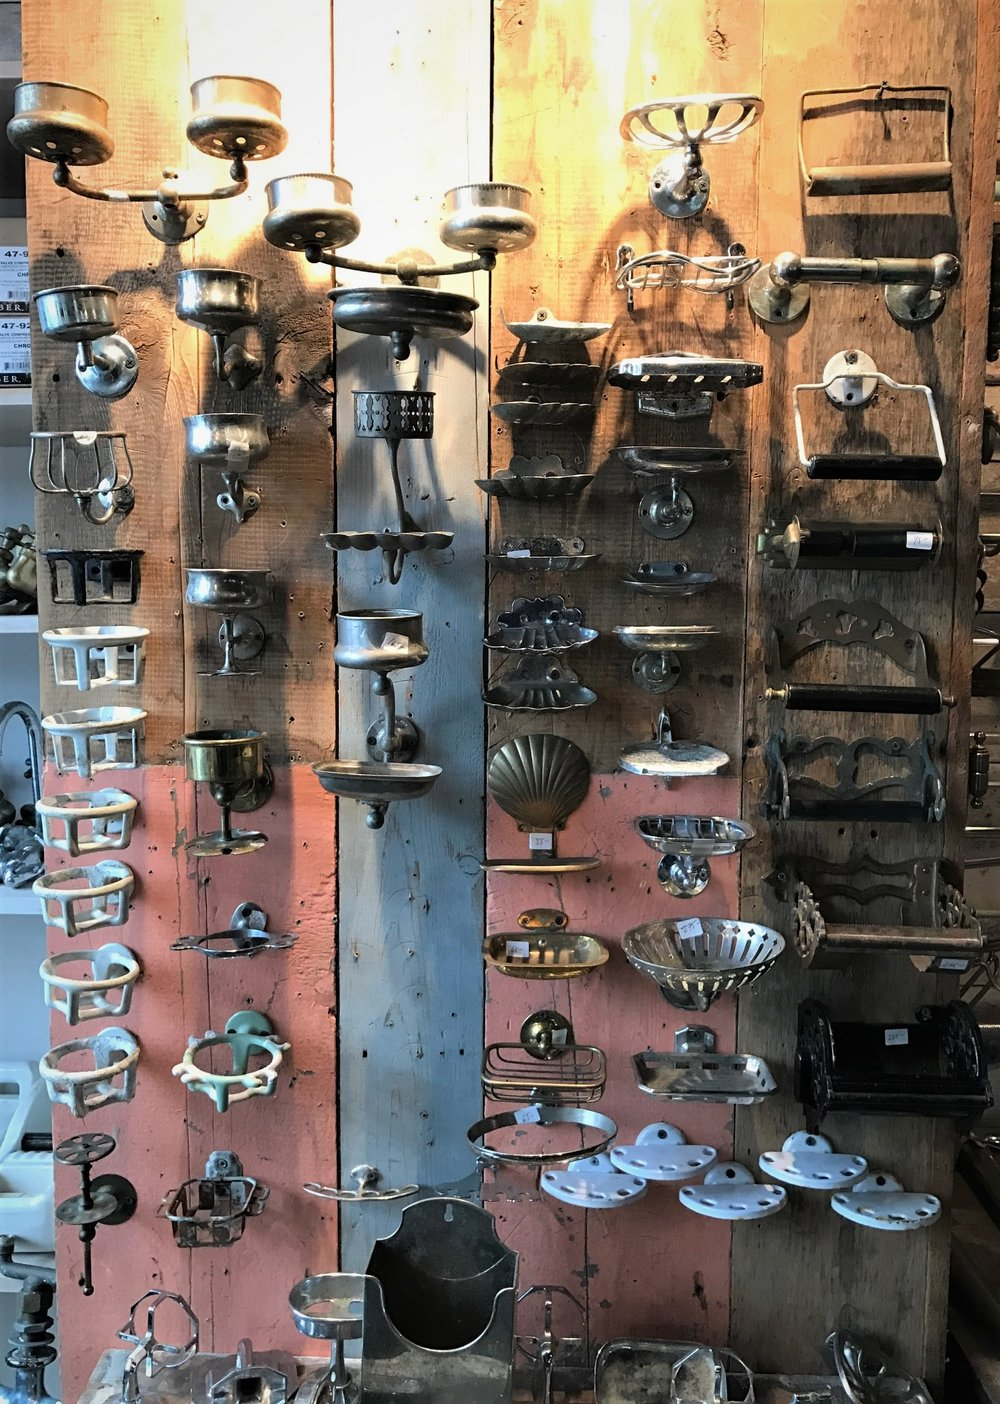 All Plumbing — Portland Architectural Salvage